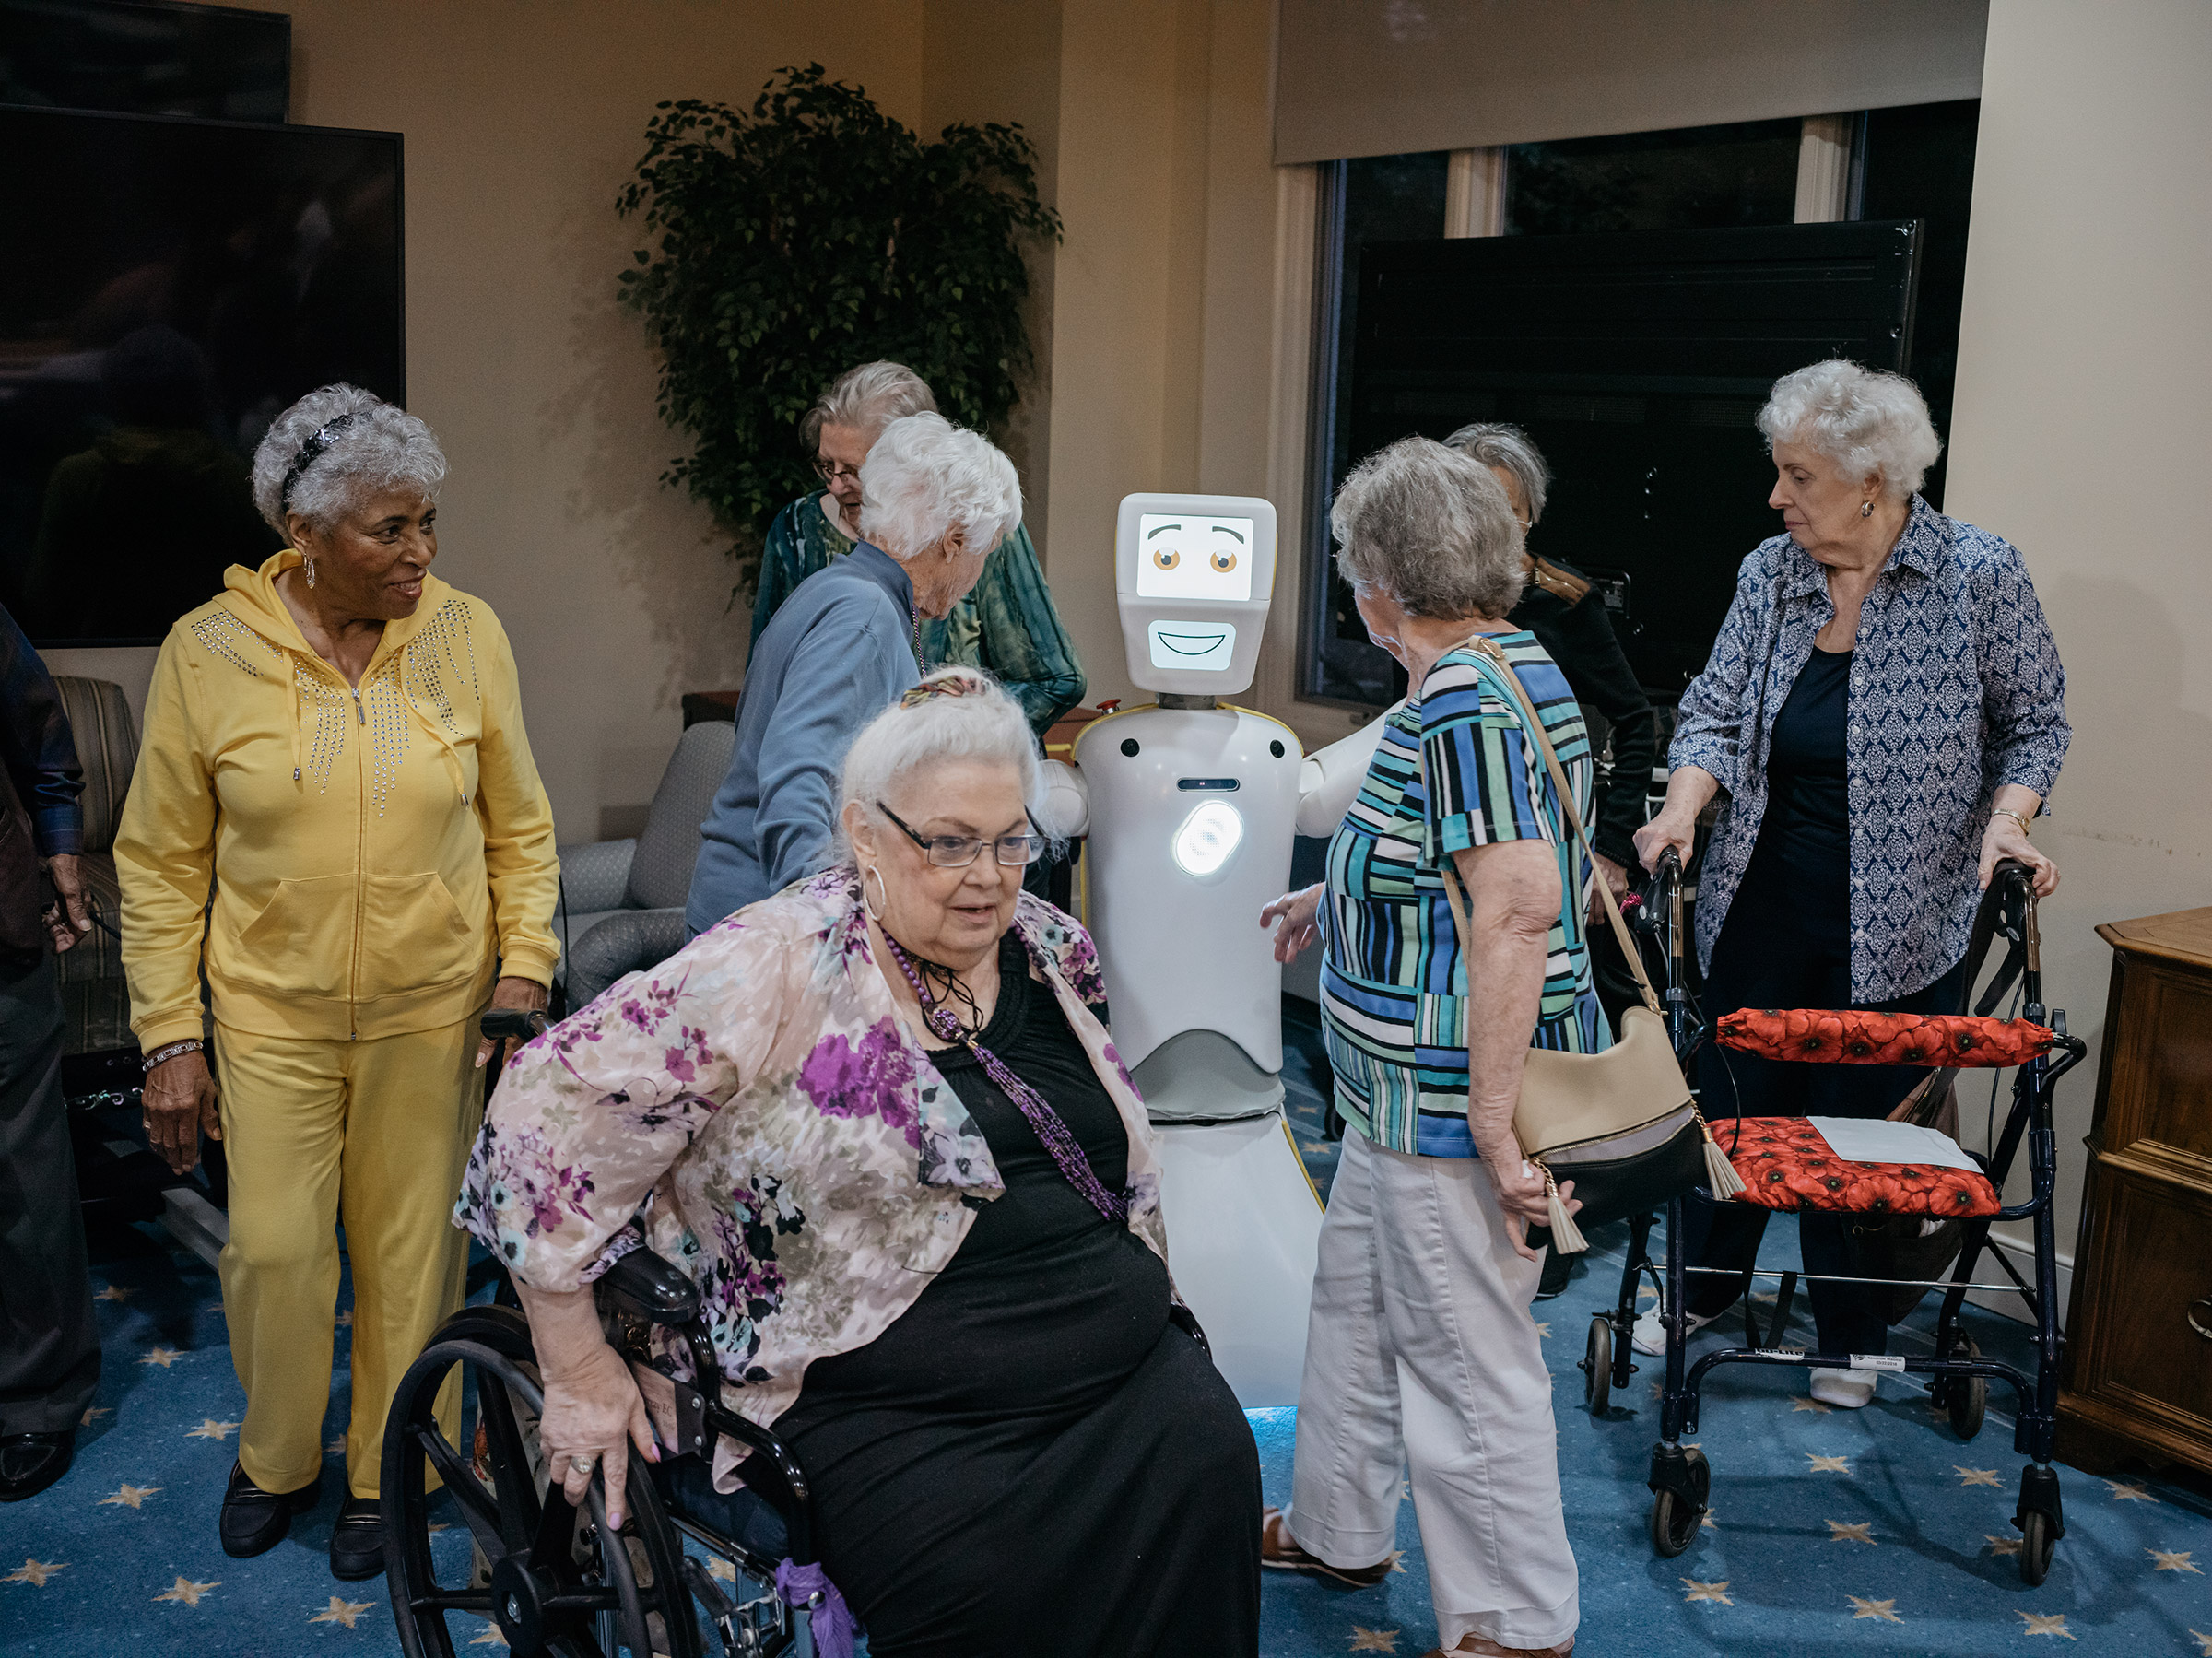 Residents at Knollwood Military Retirement Community in Washington, D.C. gather around Stevie after Bingo night.